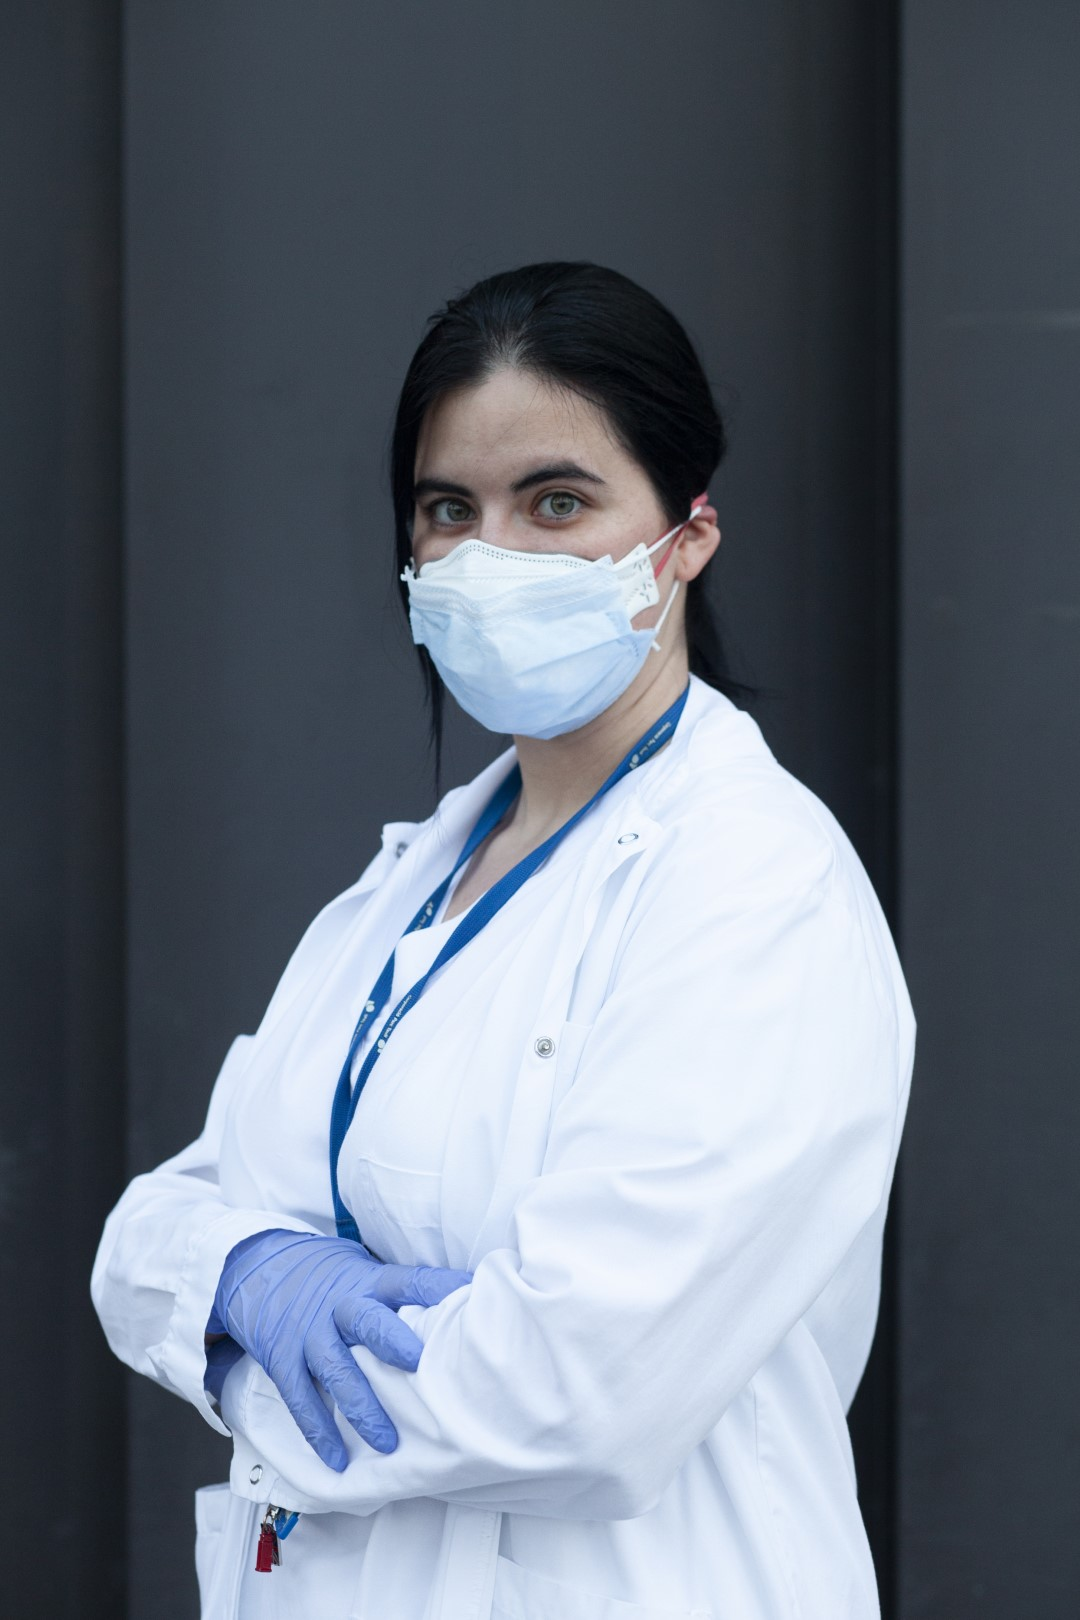 To the front line. Faces from different sectors that stand firm in the fight against COVID-19. Raquel Granados, auxiliary nursing technician at the Parc Taulí Hospital. April 3, 2020; Sabadell, Barcelona.